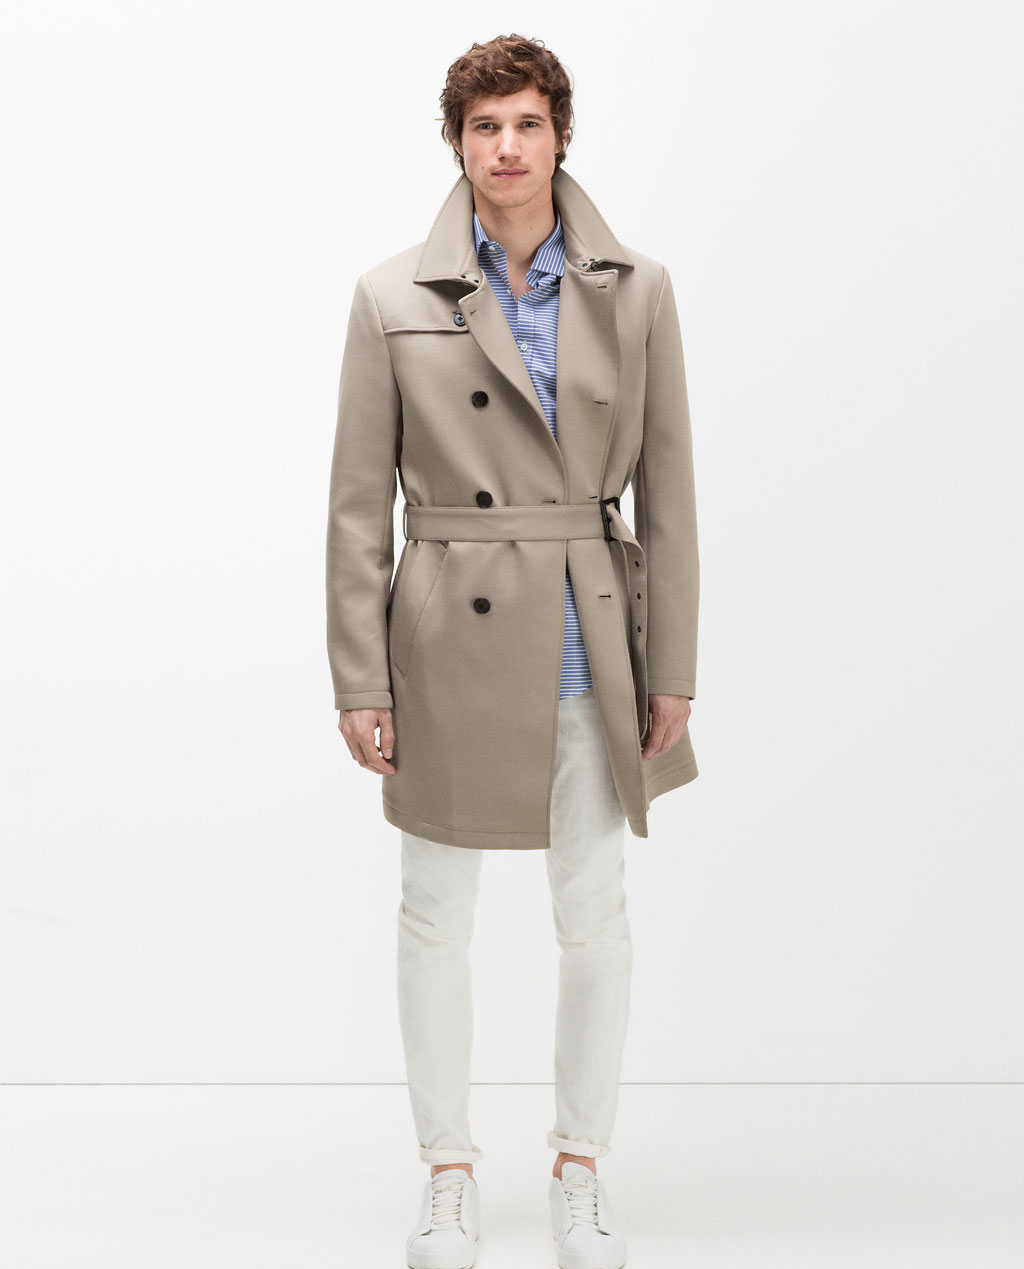 competitive price 333d7 4b431 Diariosur Your Hombre Trends es Blog Take Moda CwHq1OO